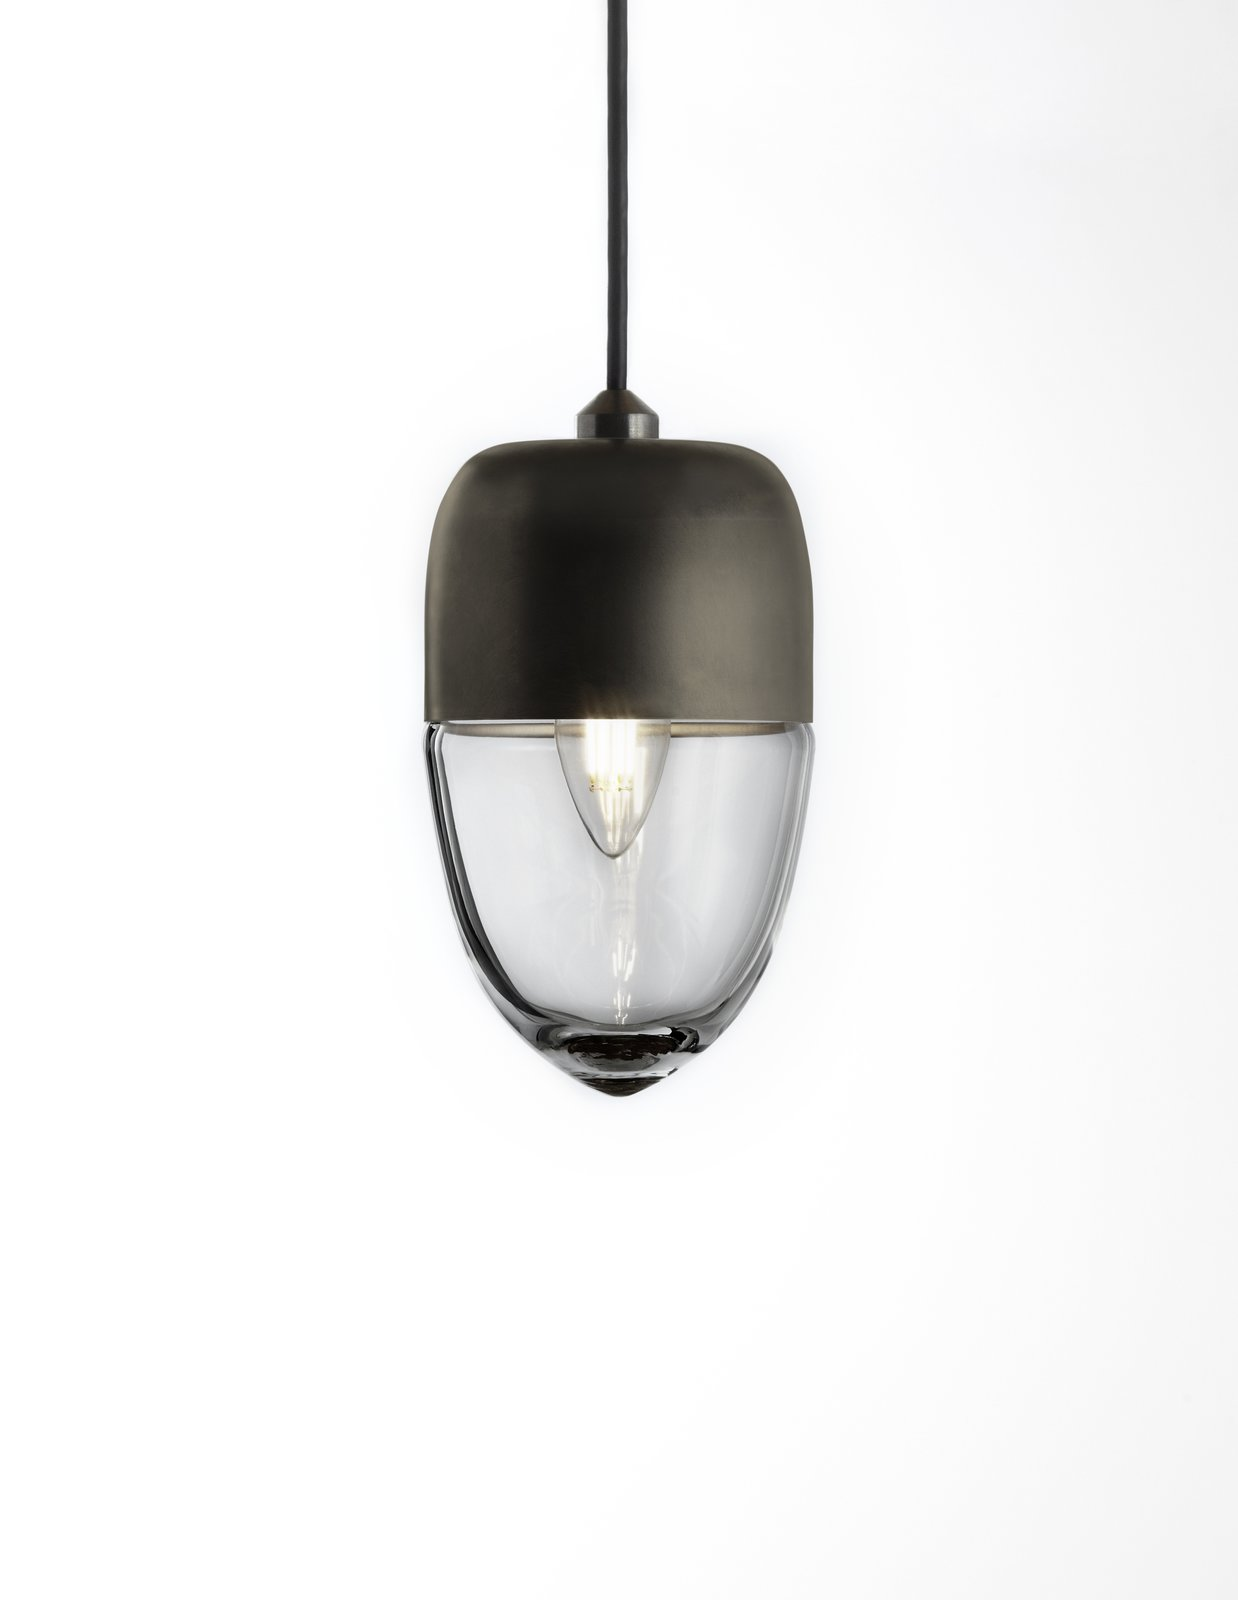 The Vela light has a thin, delicate shape and was designed as small floating vessel for lighting modern spaces. It can be used in multi-pendant installations.  60+ Modern Lighting Solutions by Dwell from Parallel Series